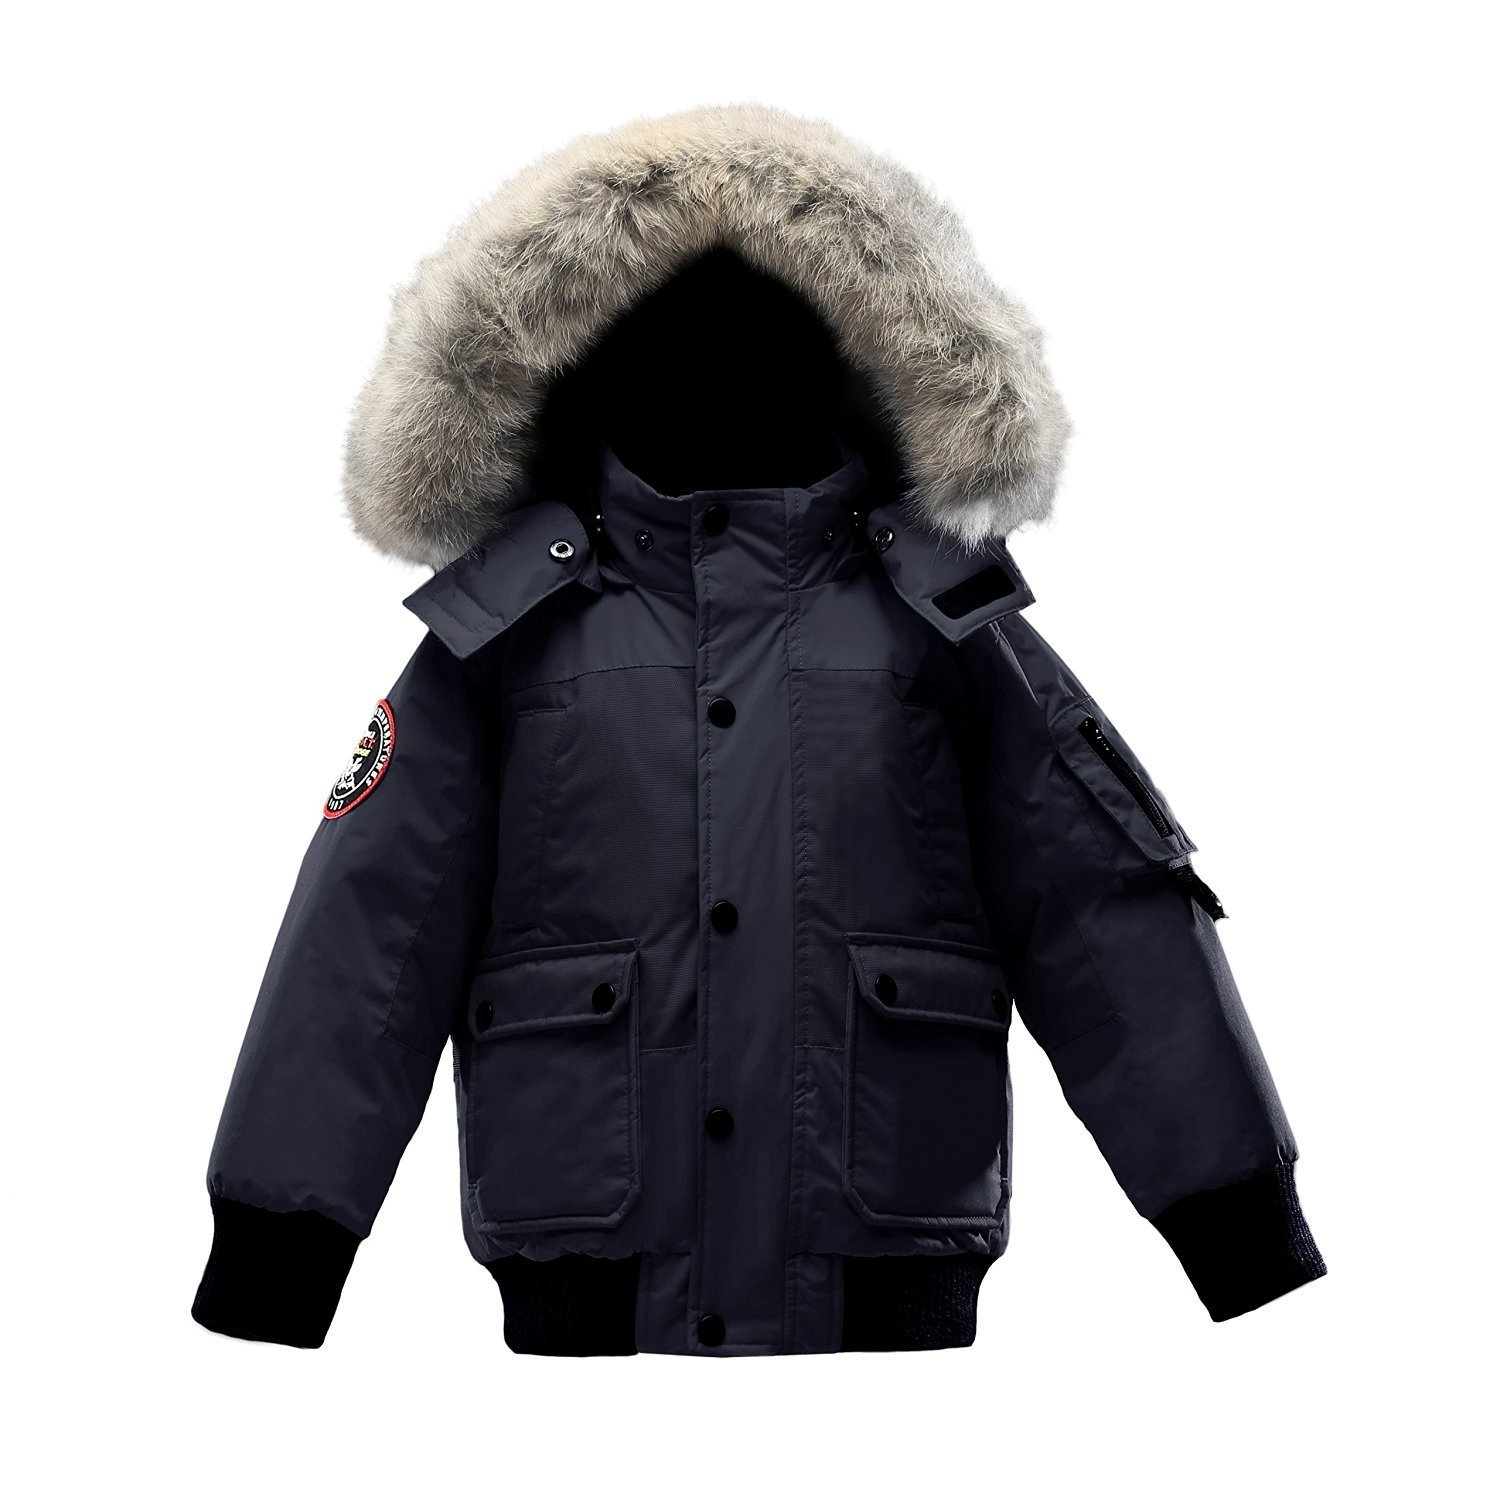 Triple F.A.T. Goose Grinnell Boys Down Jacket With Real Coyote Fur (12/14, Navy) by Triple F.A.T. Goose